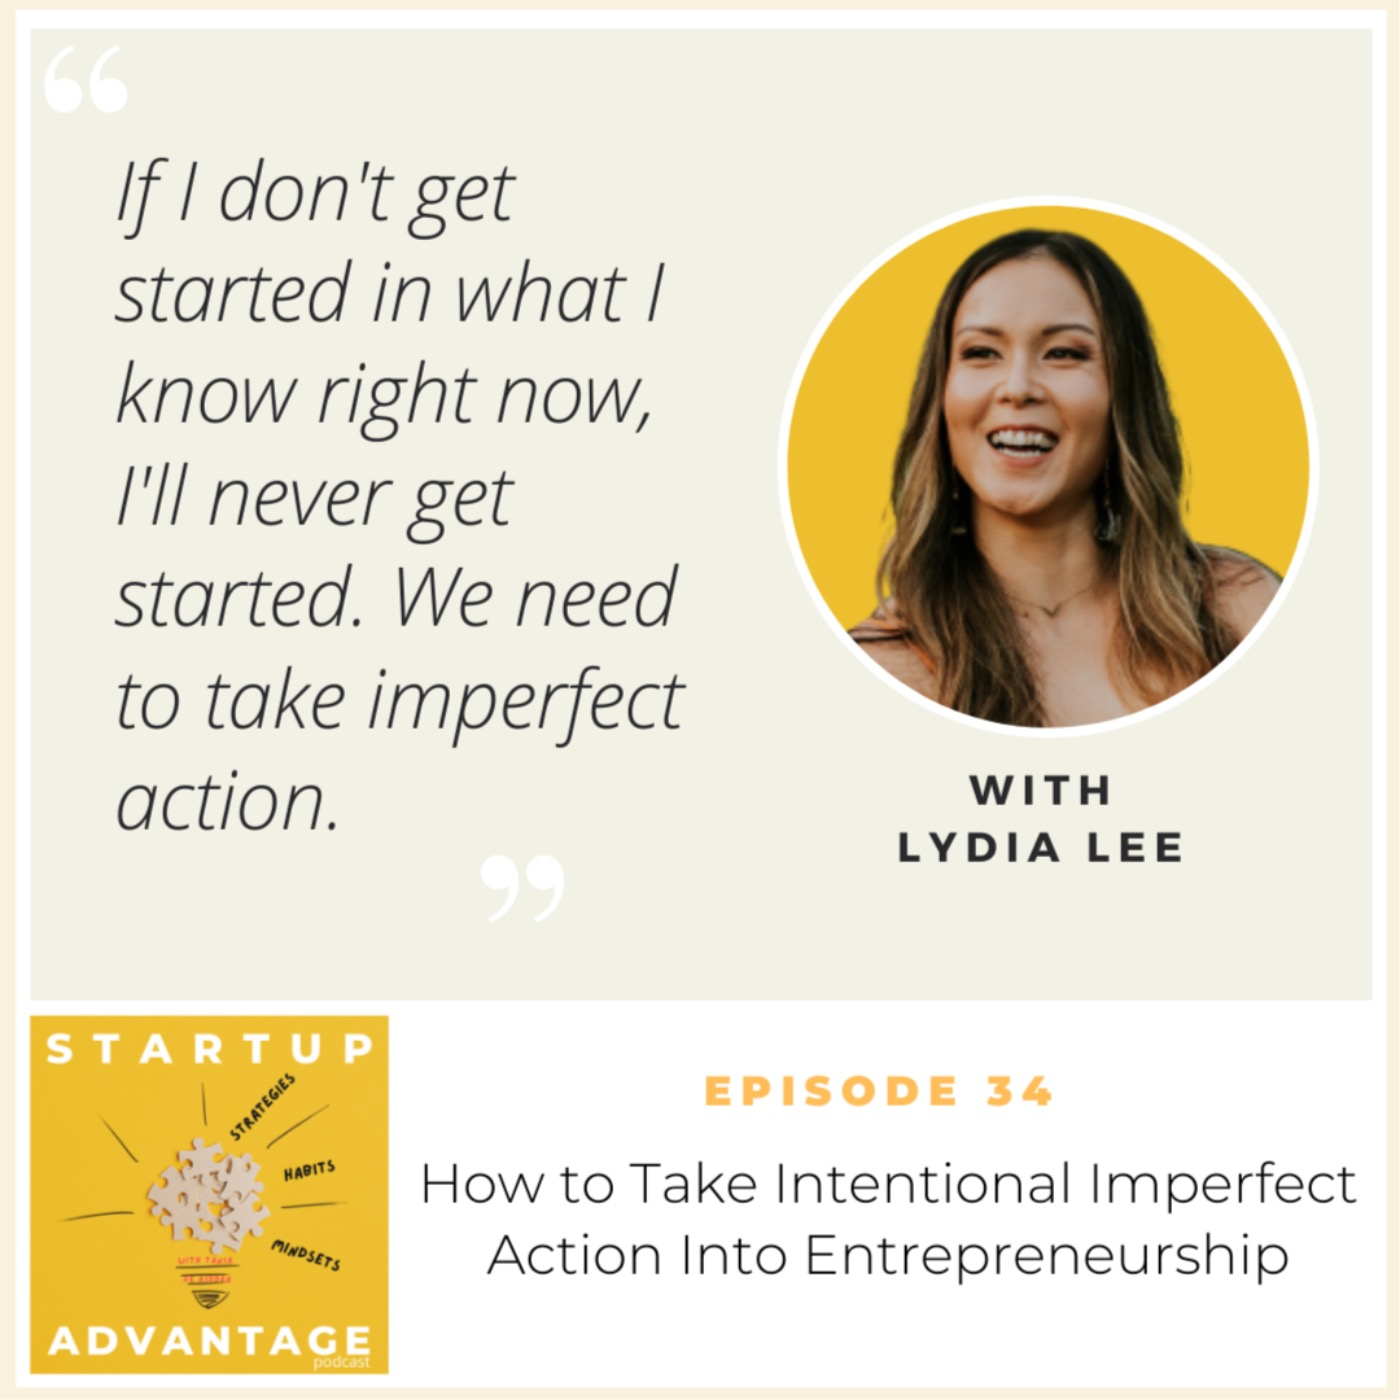 How to Take Intentional Imperfect Action Into Entrepreneurship with Lydia Lee